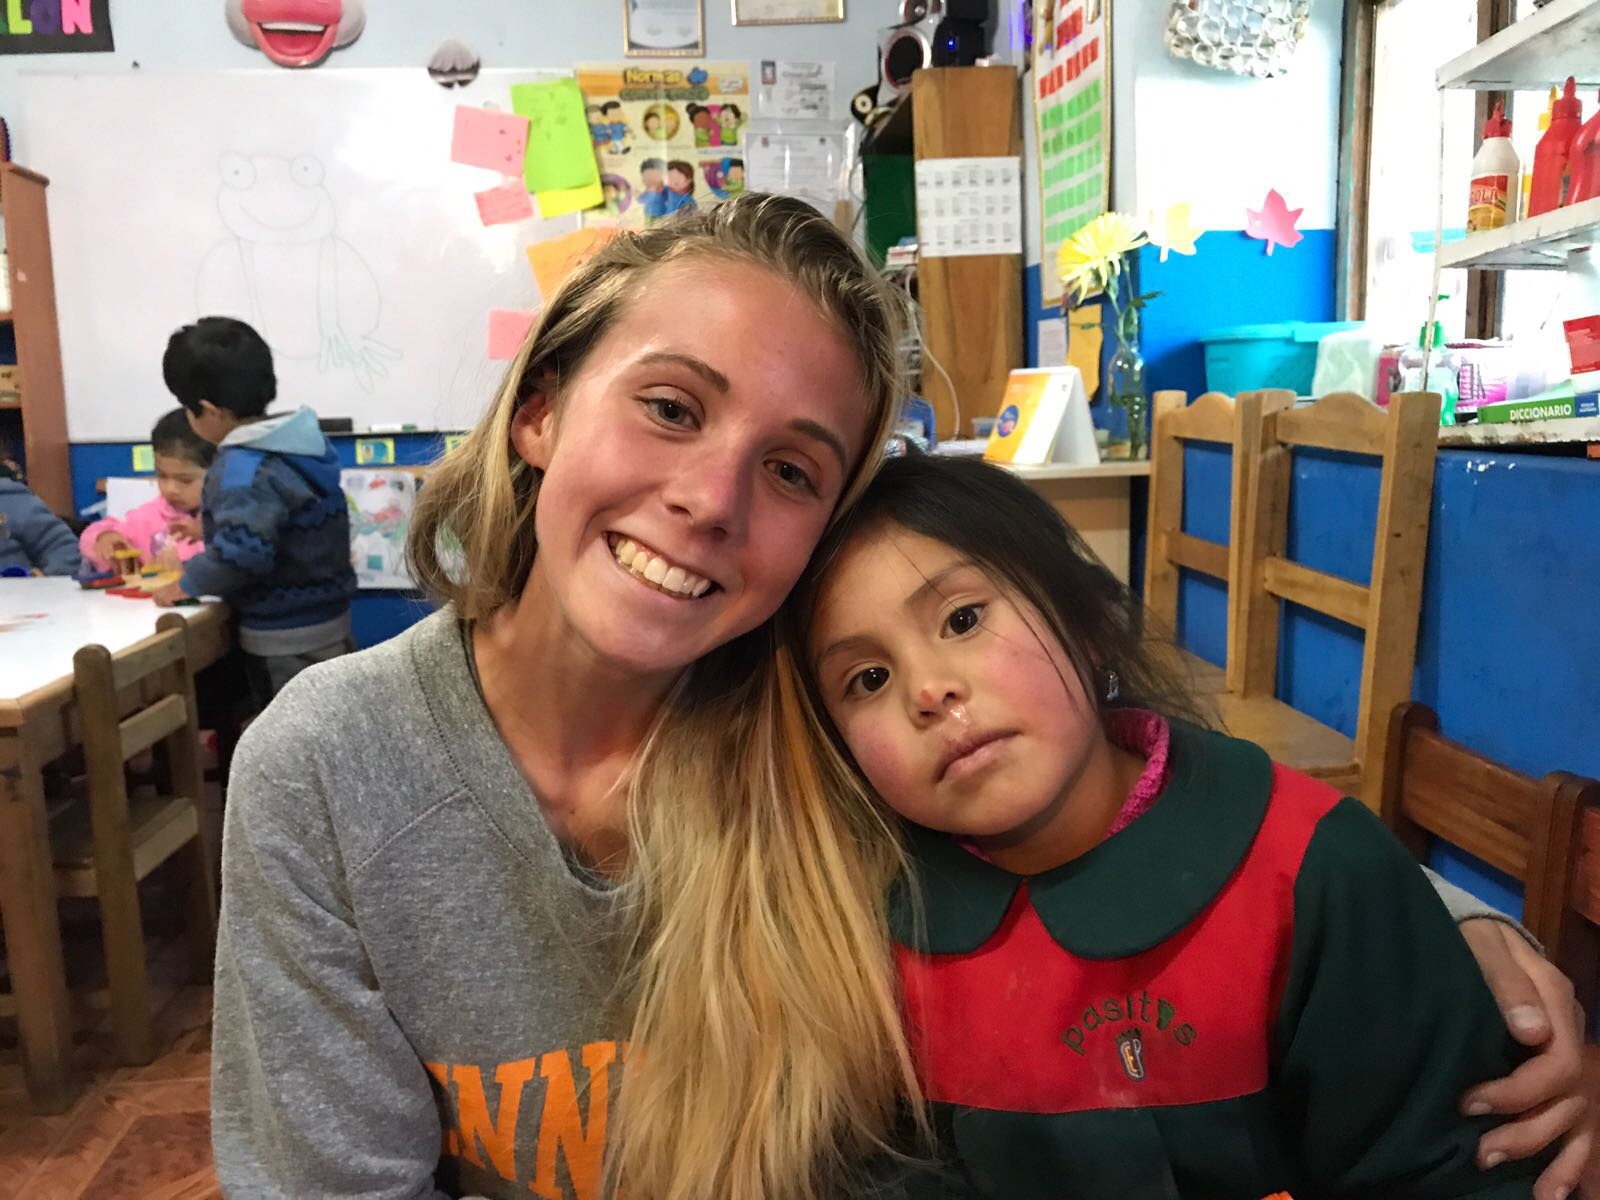 Volunteer Experience by Niamh Schumacher about Volunteering in Peru.